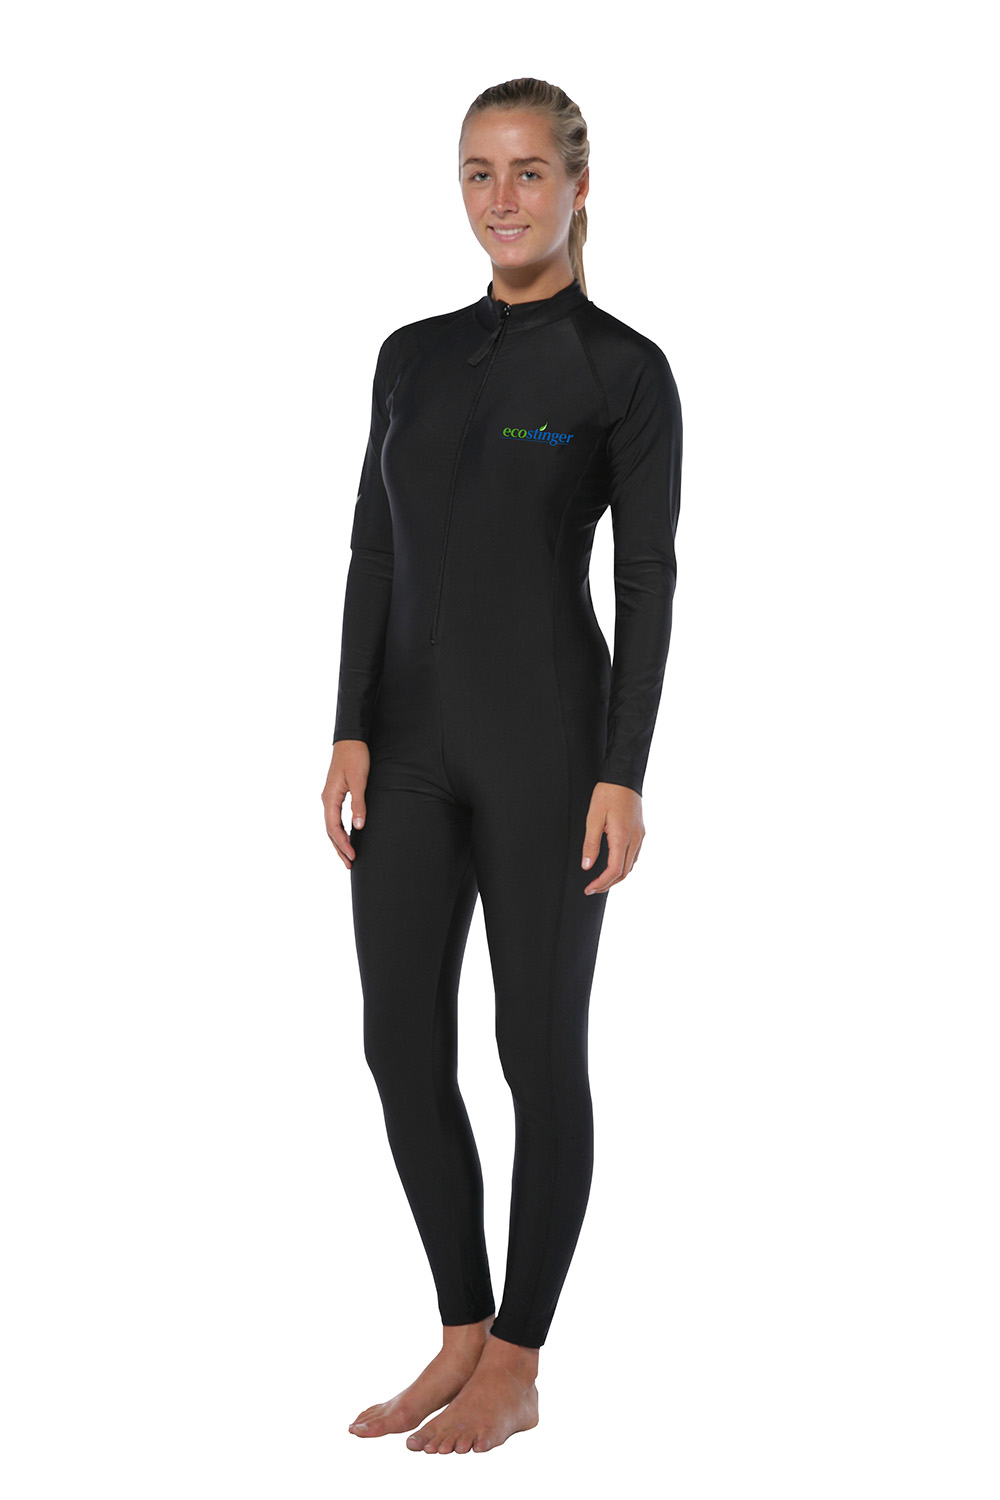 women-full-body-uv-swimsuit-black-suit.jpg